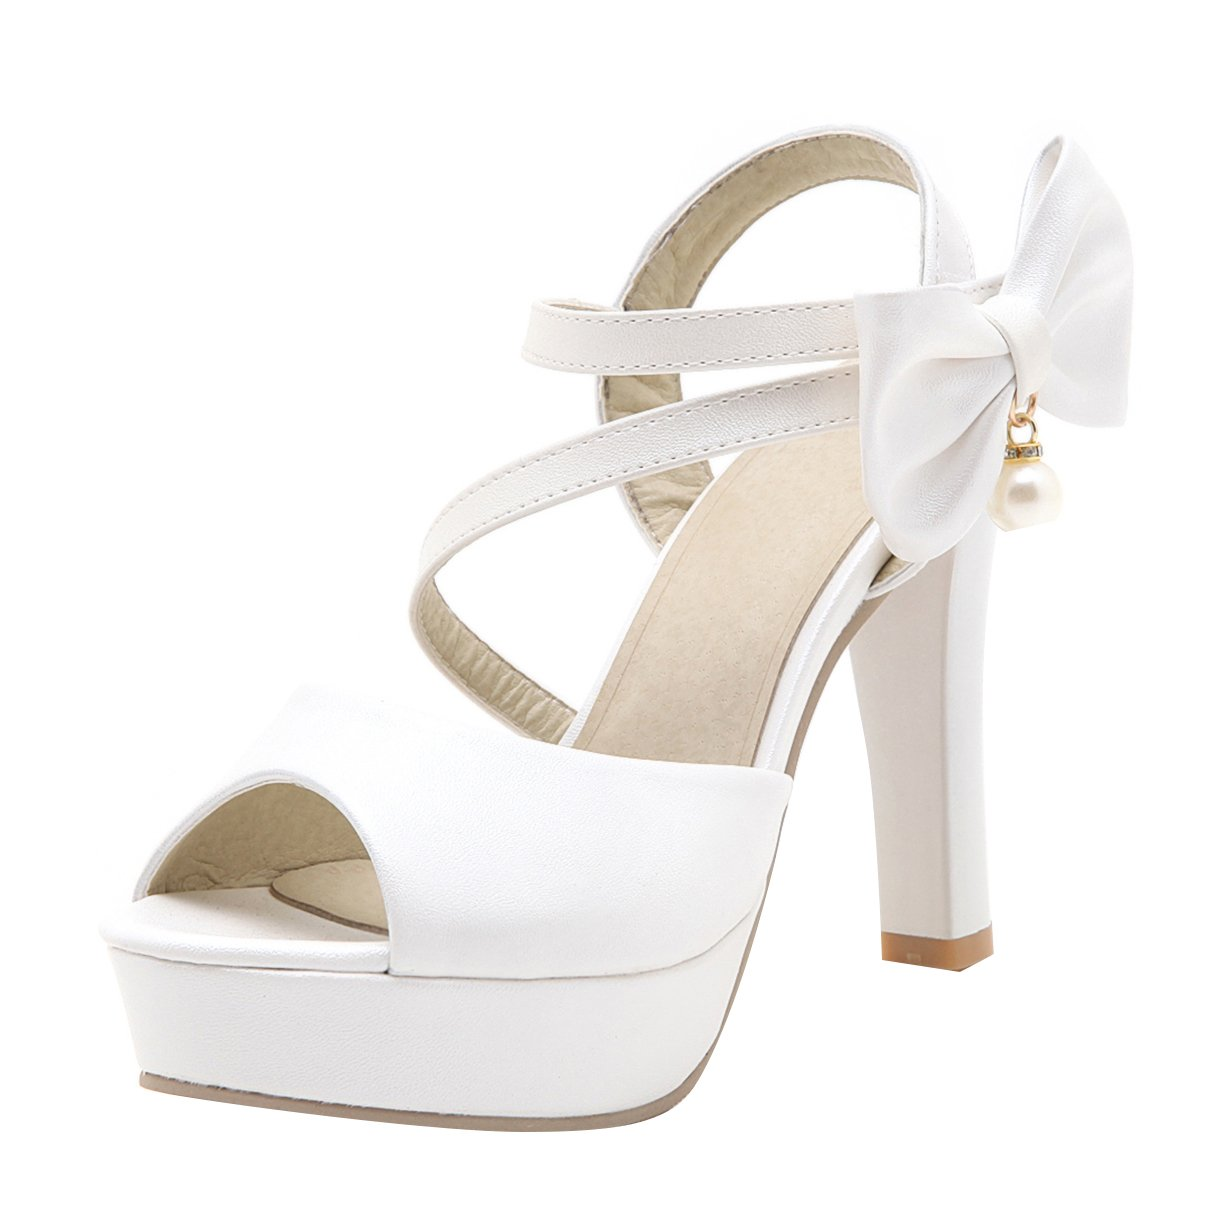 JYshoes , Plateforme , Femme JYshoes Femme Wei? 1166e1f - latesttechnology.space